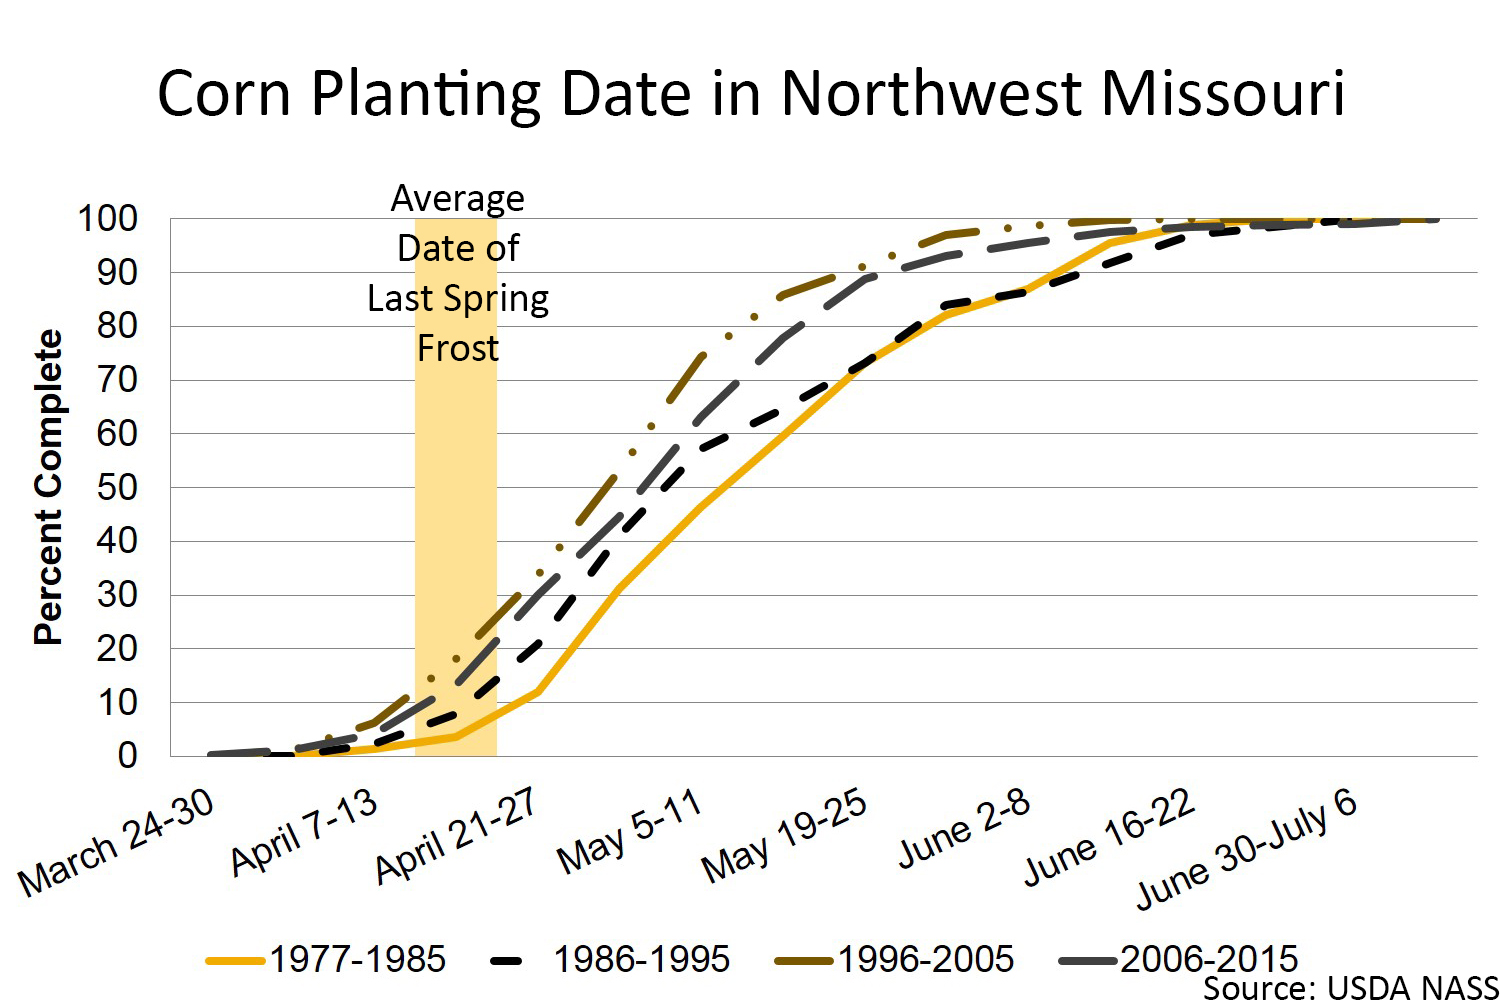 Corn planting date in Northwest Missouri chart